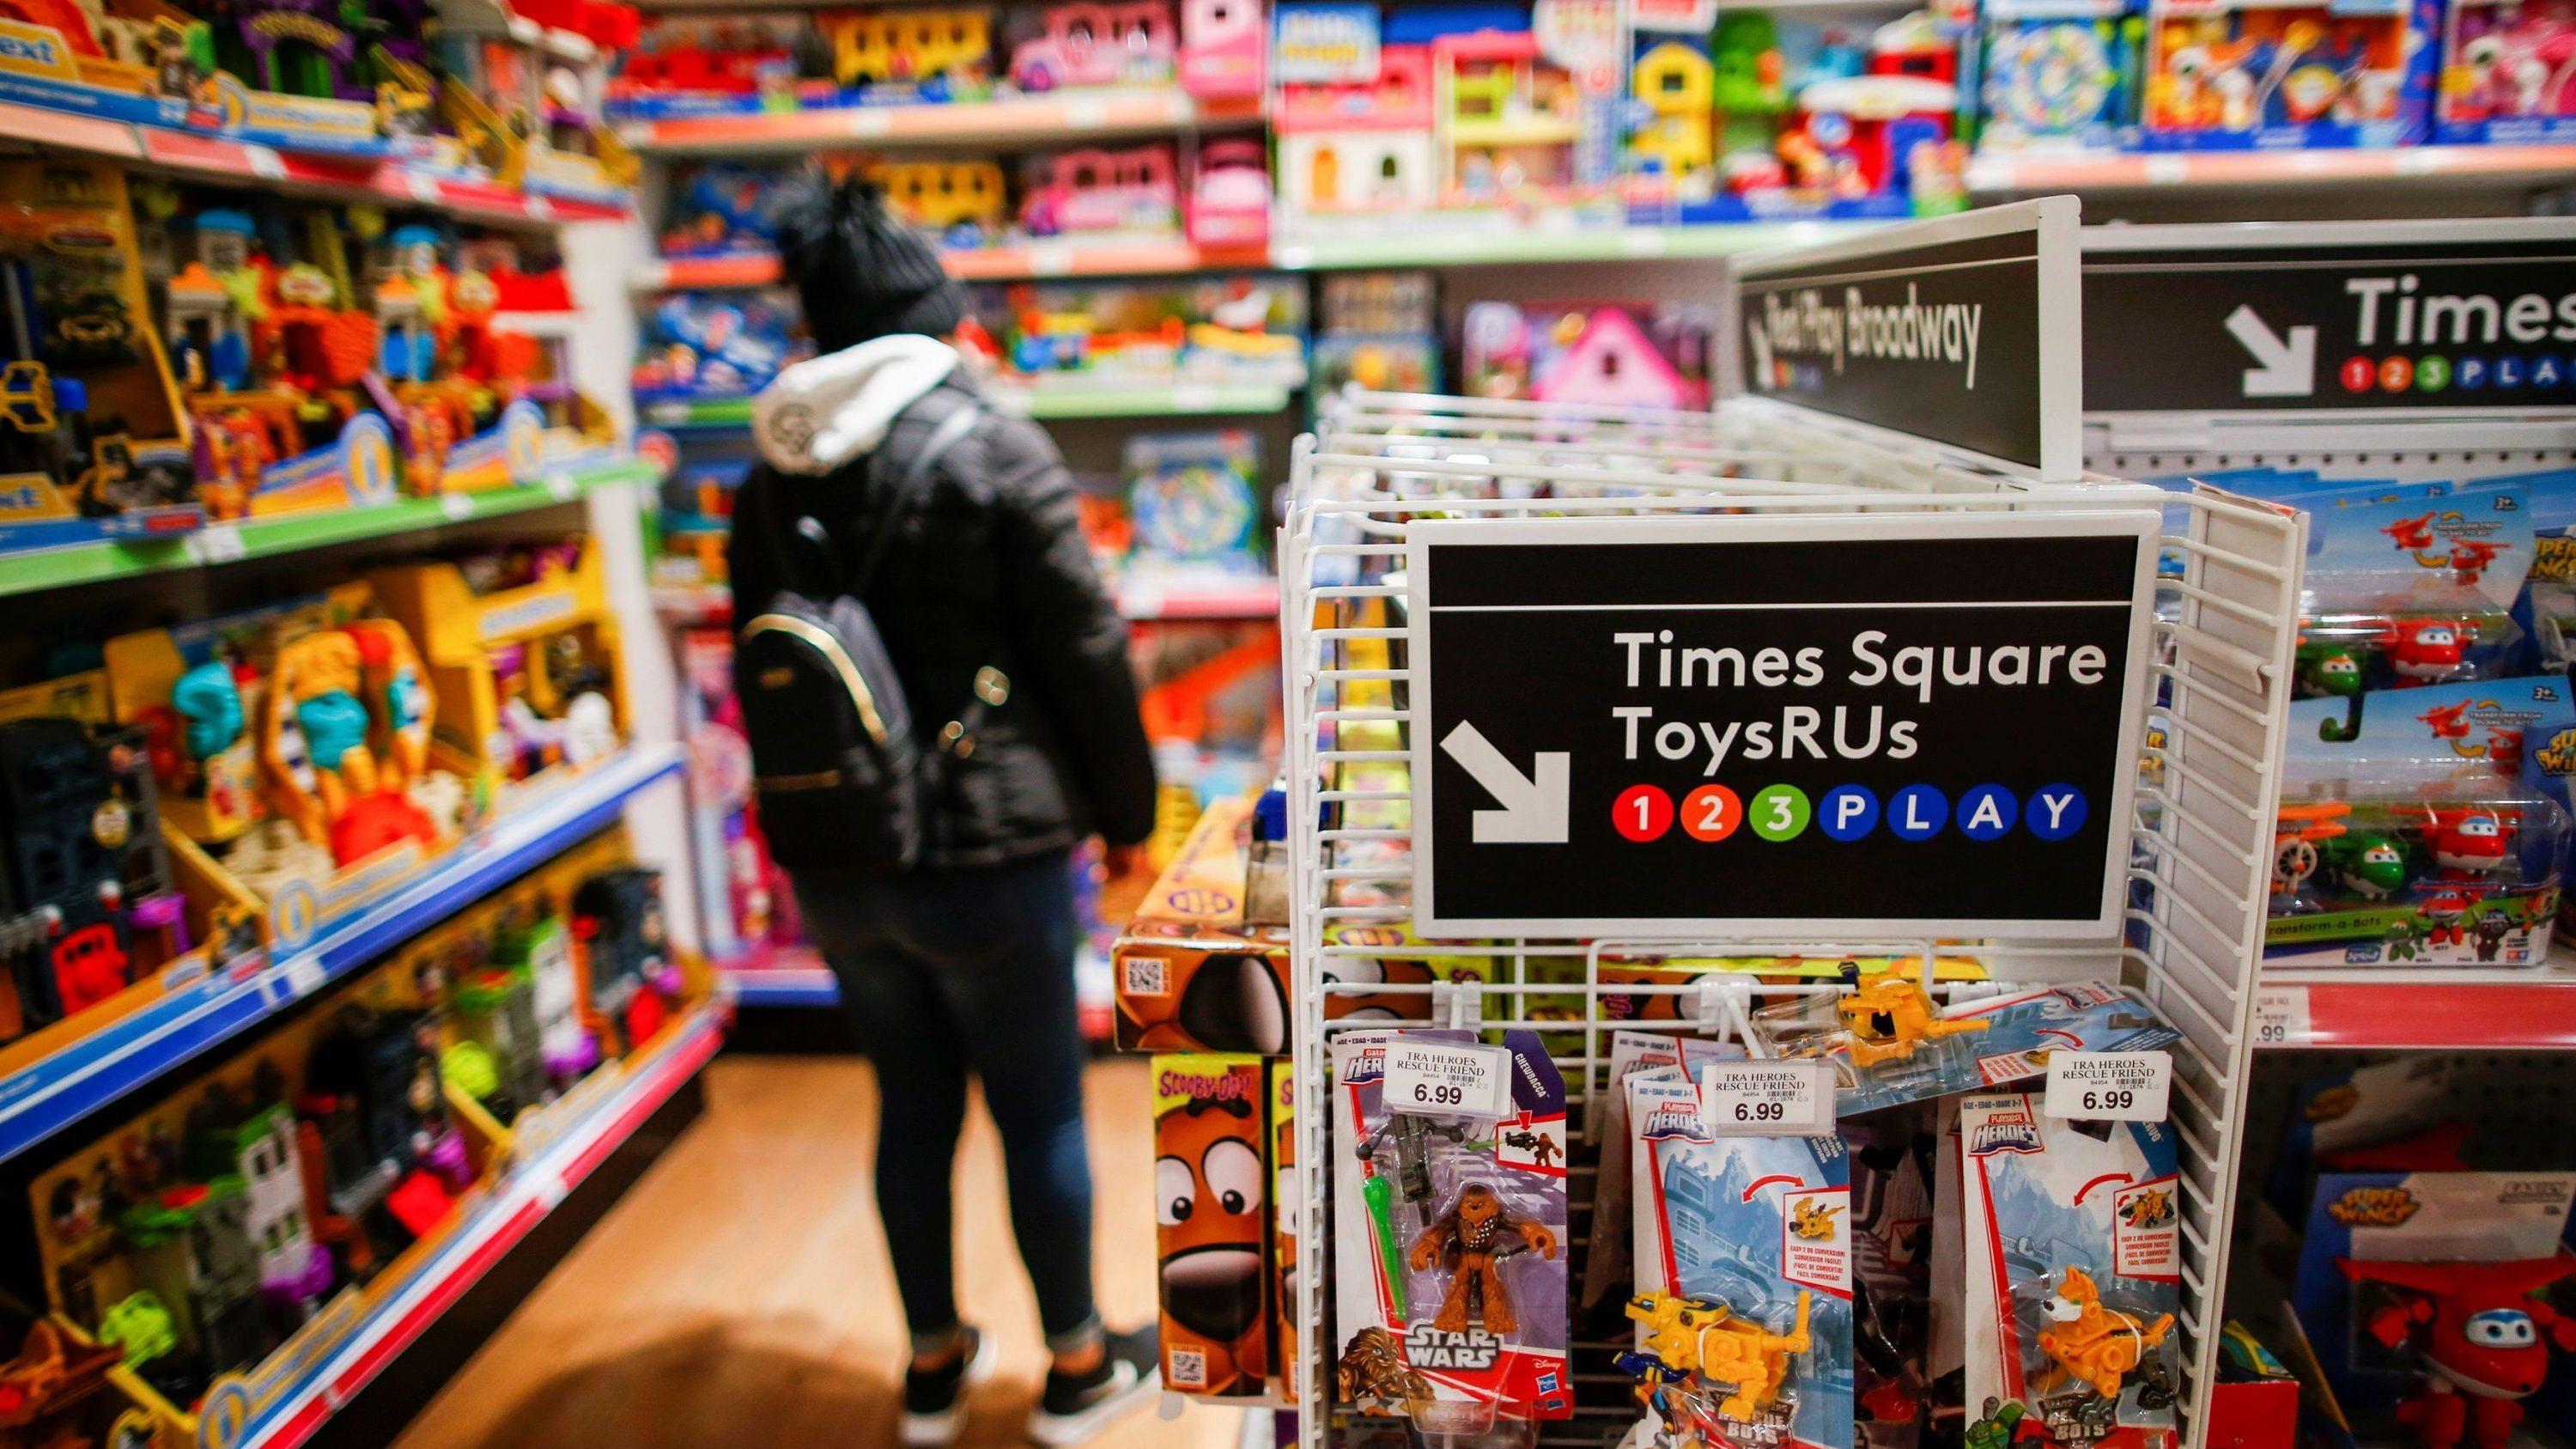 A woman visits Toys R Us store at Times Square in New York, U.S., March 9, 2018.